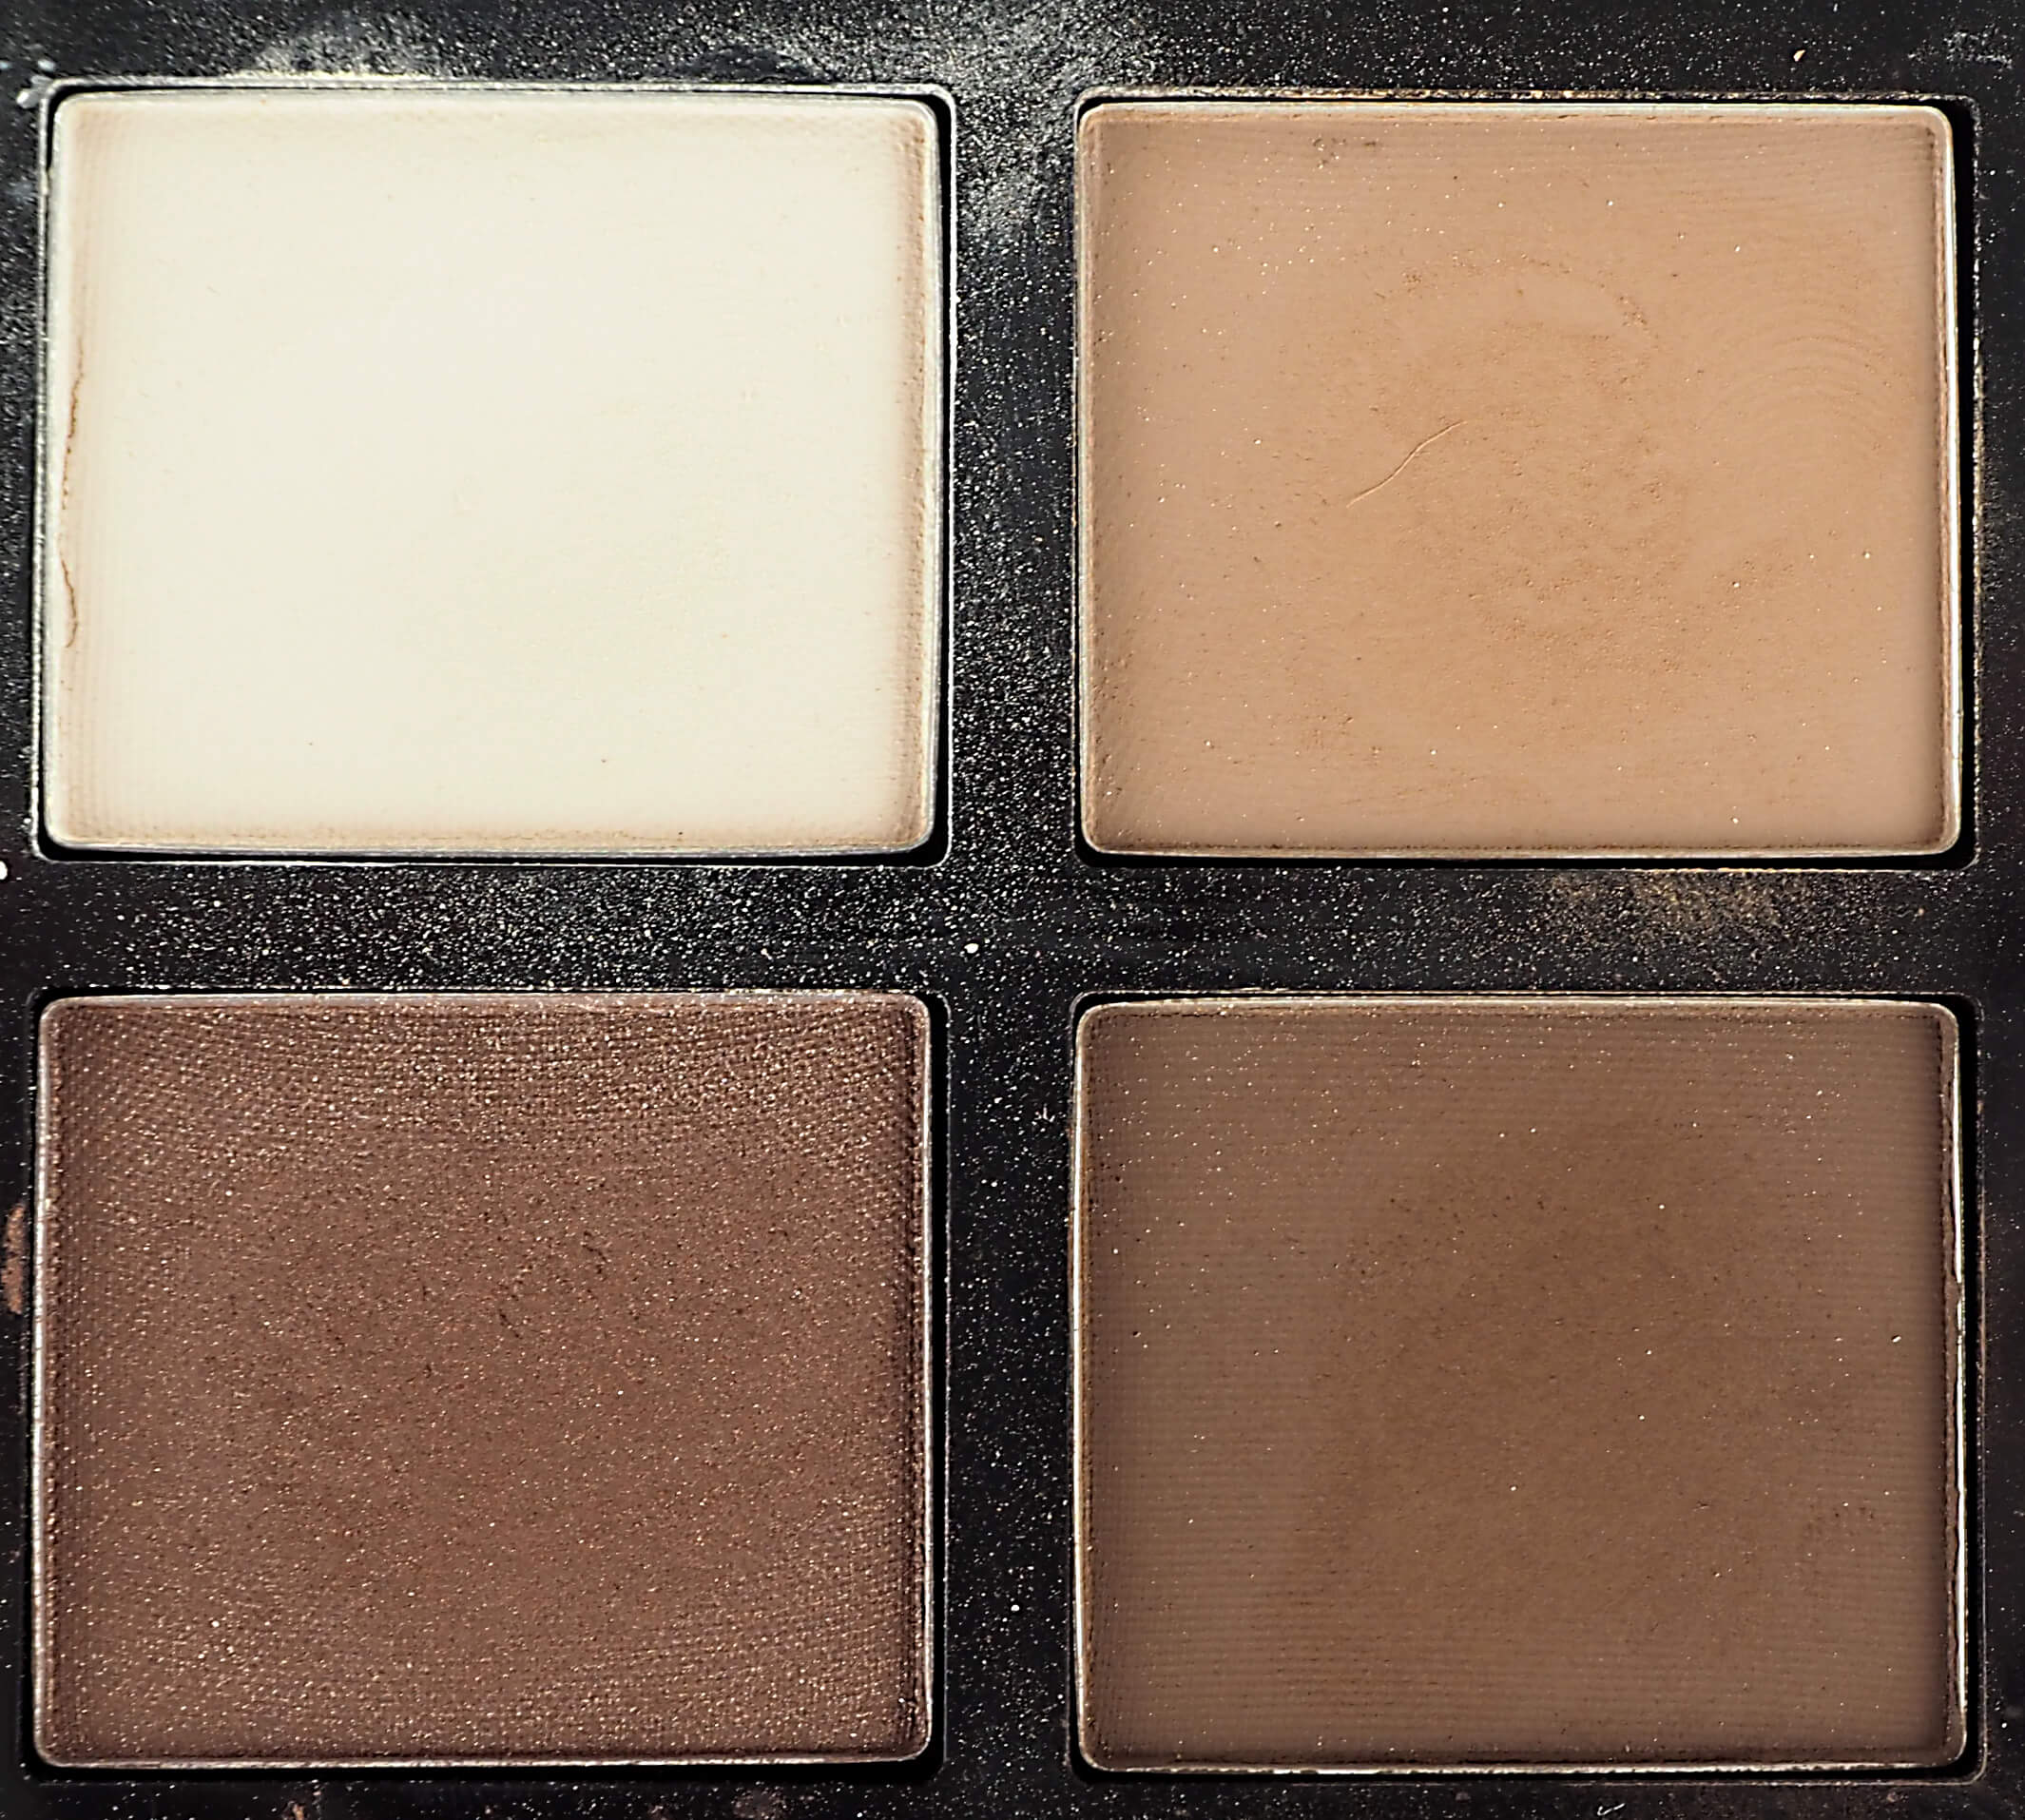 Kolory TOM FORD COCOA MIRAGE Eye Color Quad